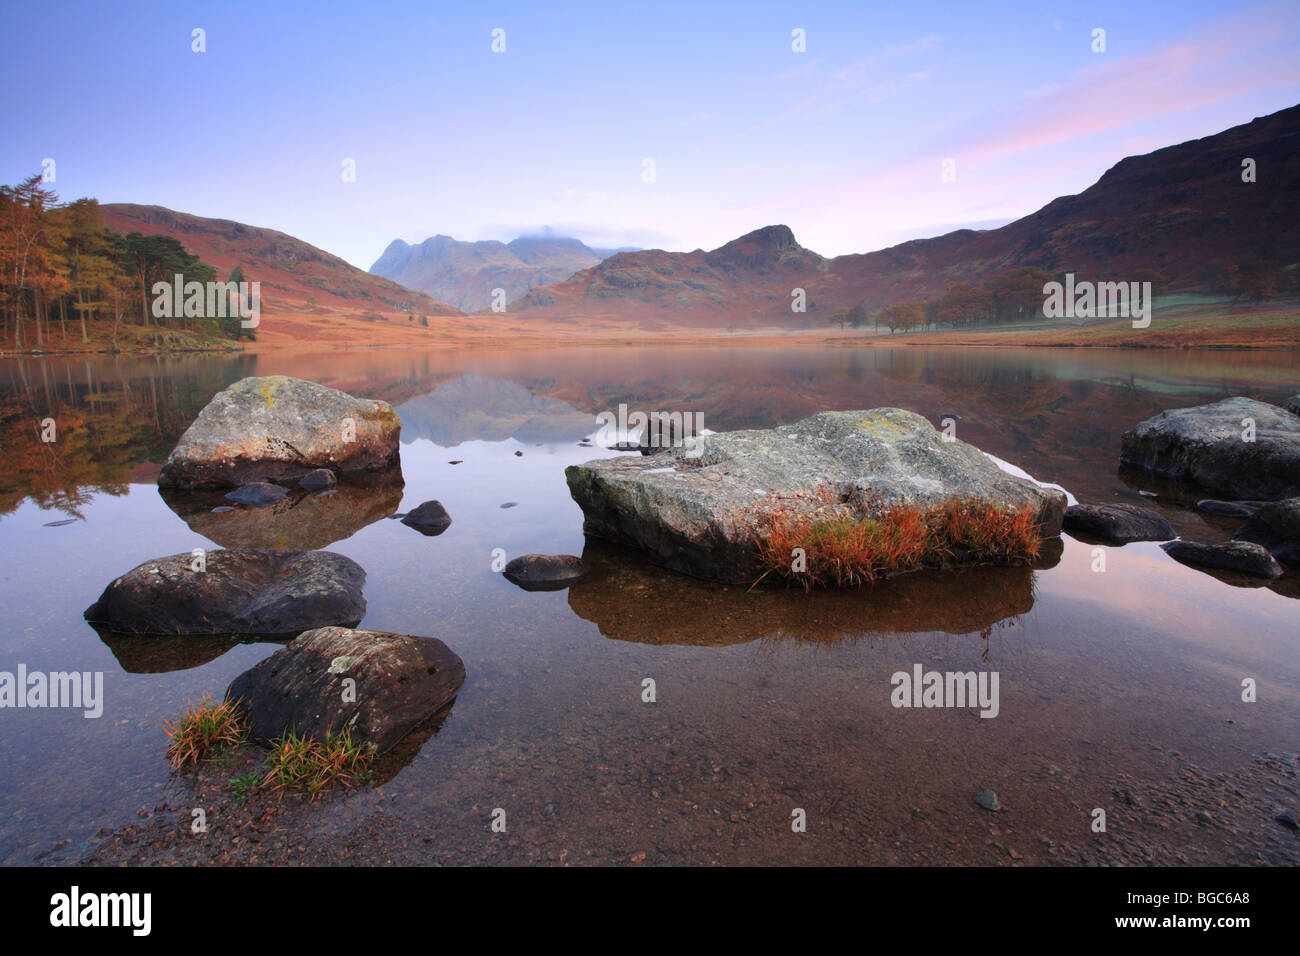 'Blea Tarn Little Langdale' rocks reflected at the waters edge, Lake District National Park, UK. - Stock Image